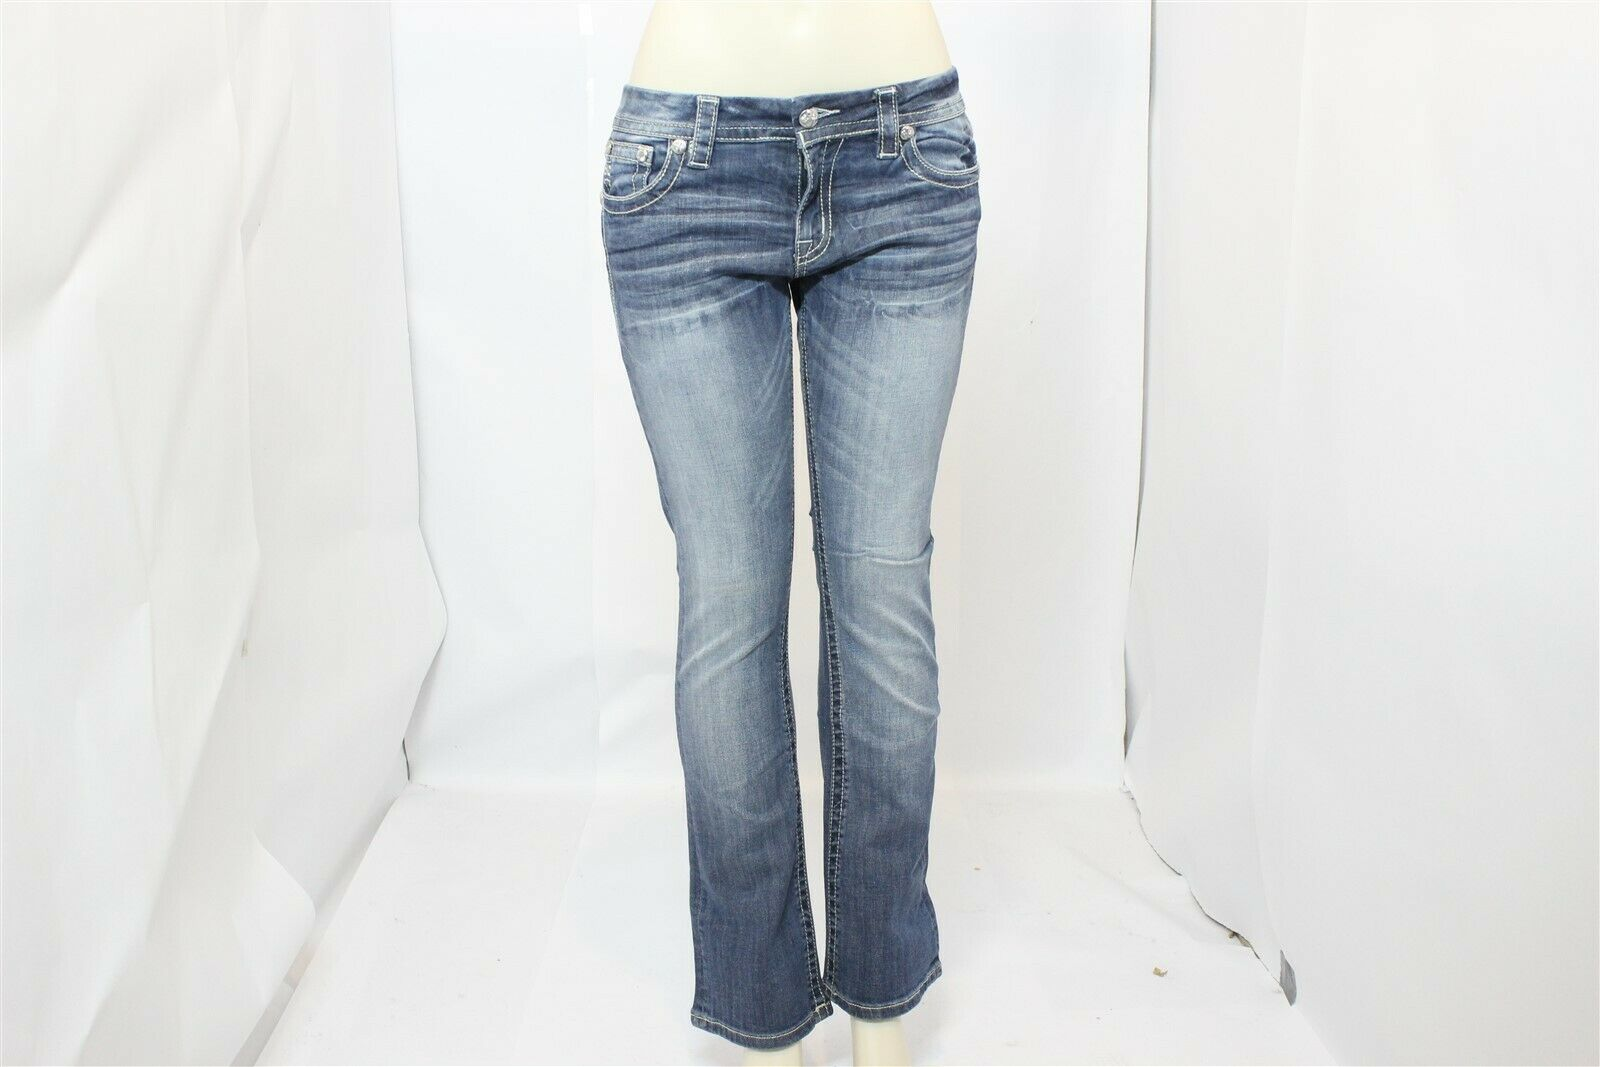 Women's MISS ME Size 31 x 31 Signature Boot Stretch Jean - Style JE8666 - NWOT